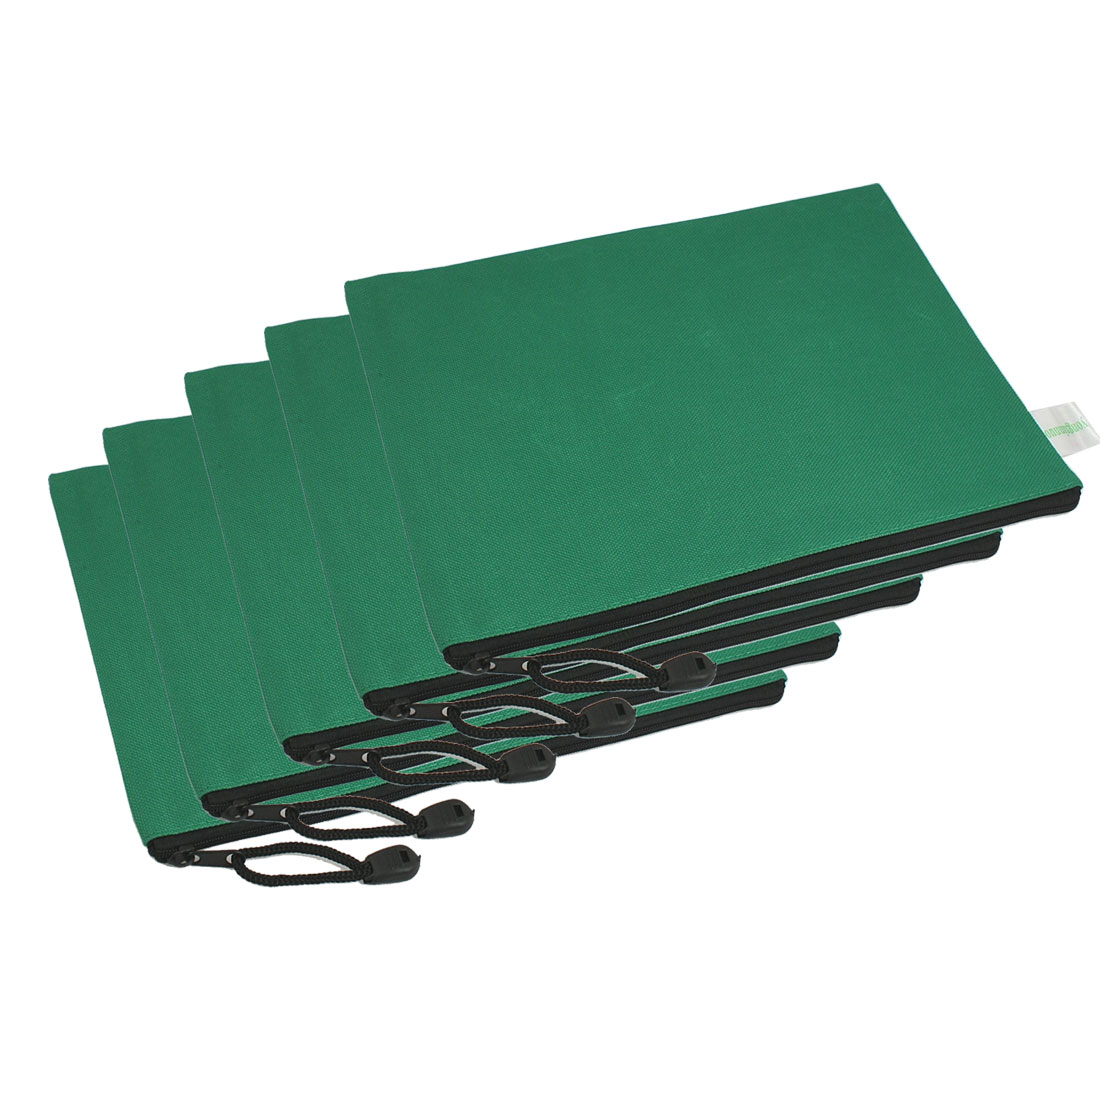 12 Pcs B5 Green Nylon Note Paper Zippered Bag w Hand Strap